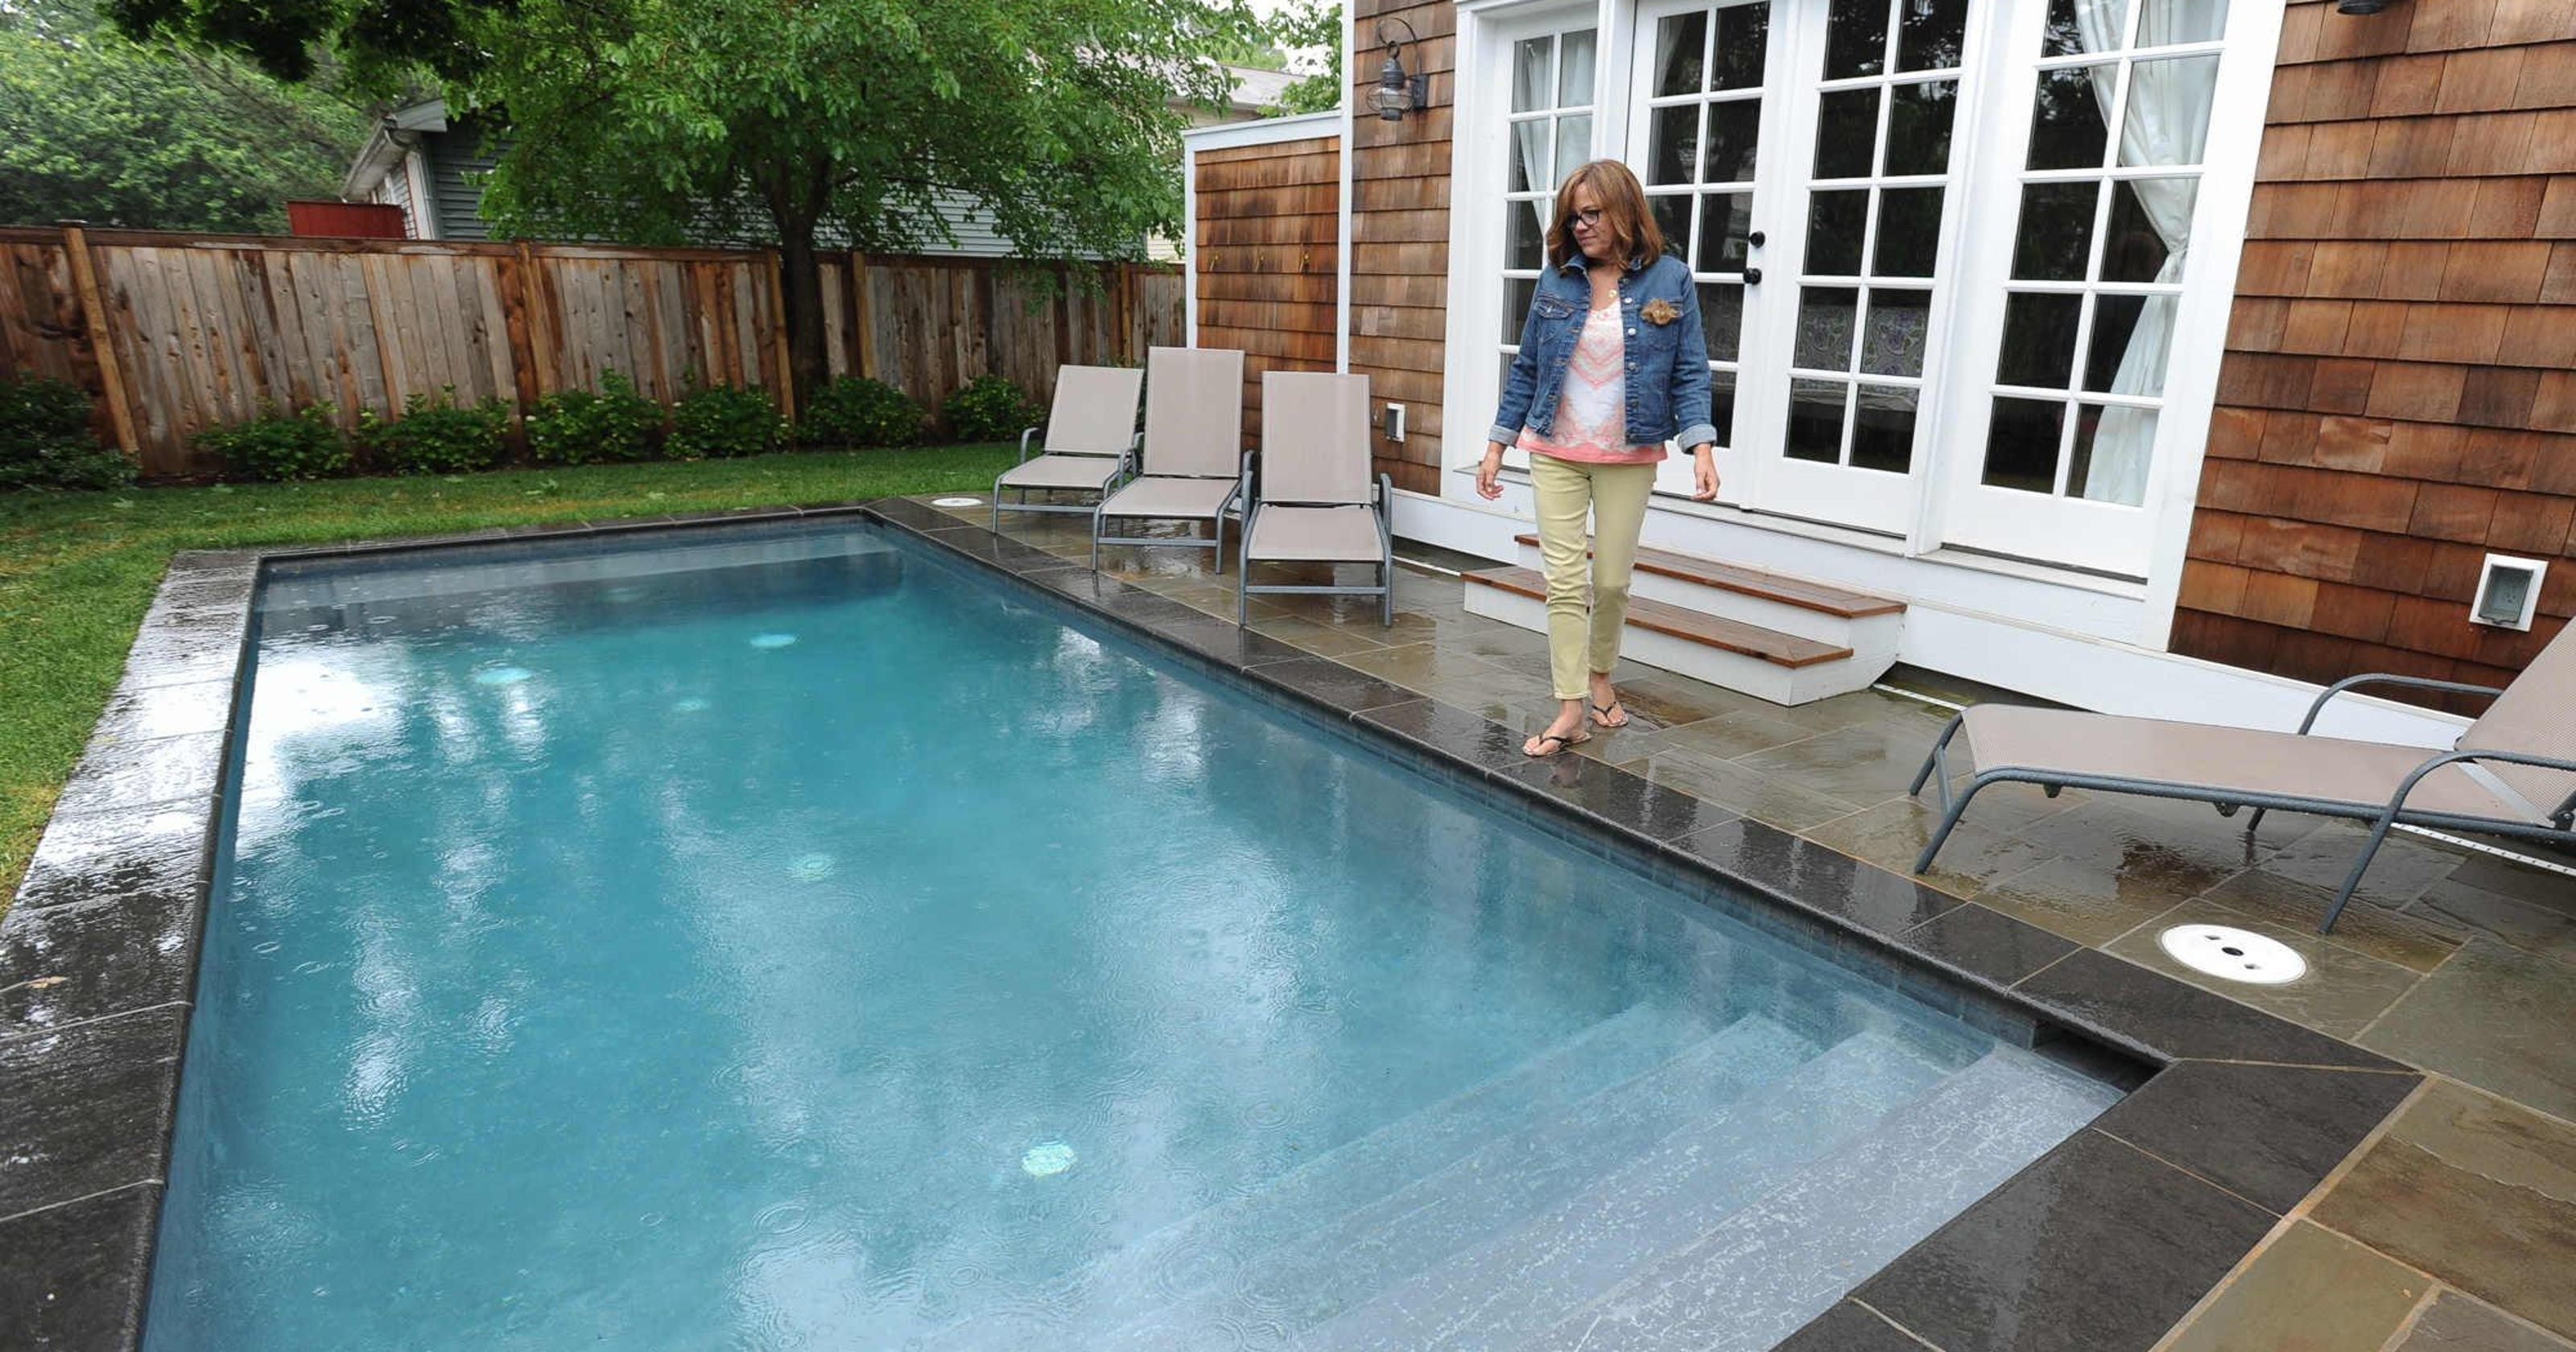 Rehoboth Board Makes Waves Over Swimming Pools